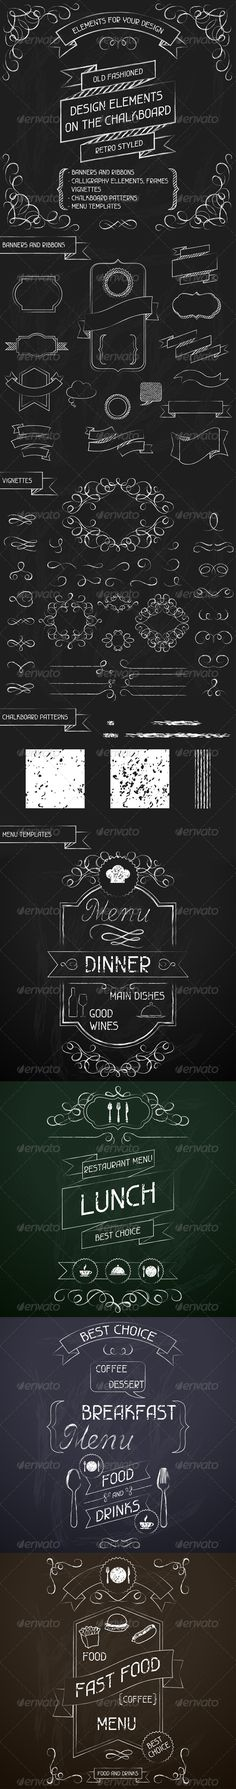 Design Elements on the Chalkboard